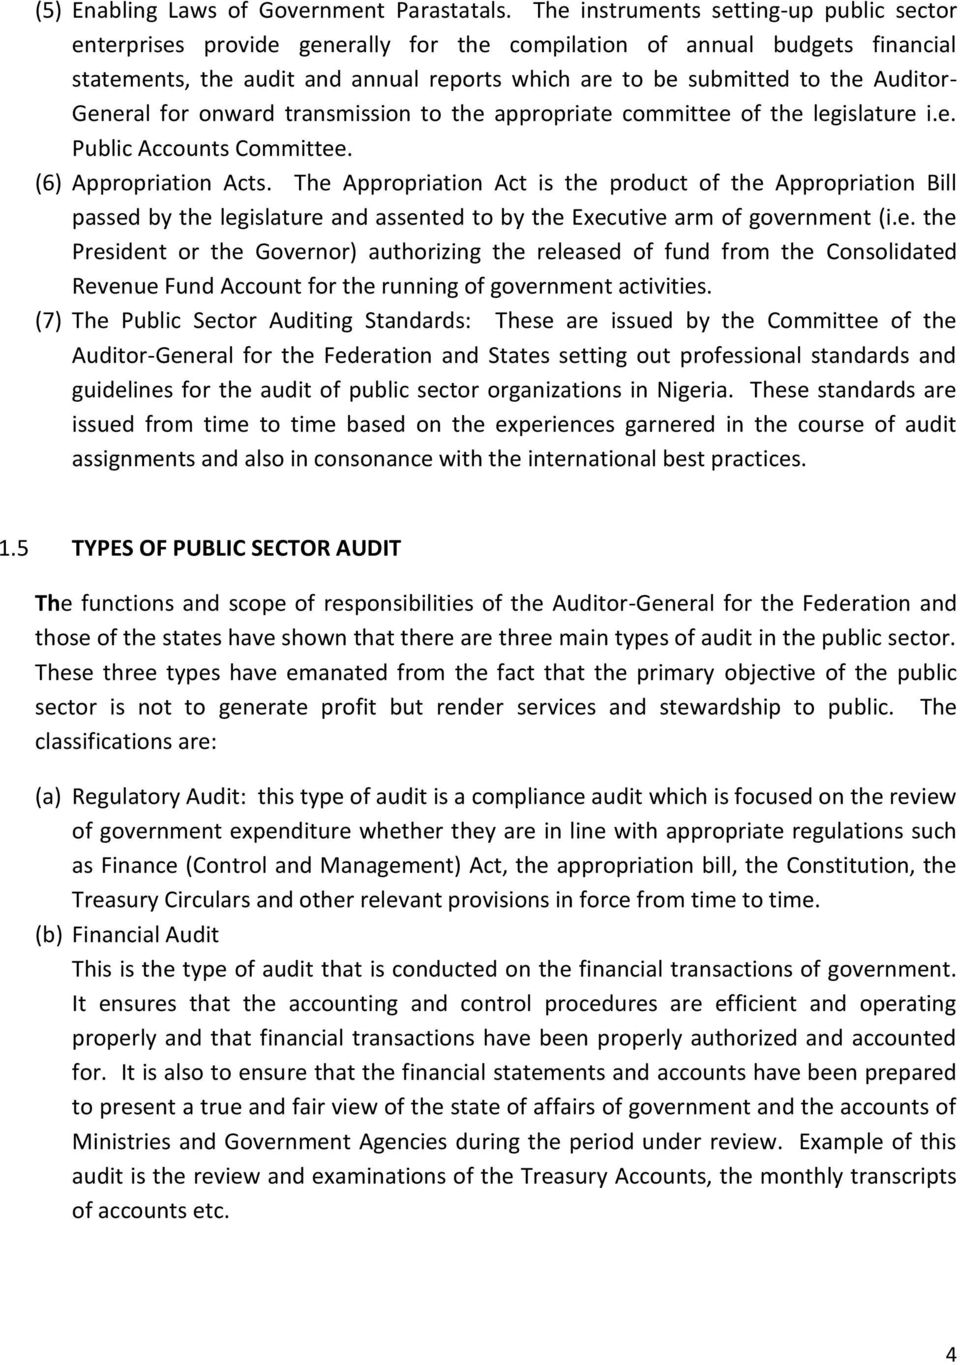 Auditor- General for onward transmission to the appropriate committee of the legislature i.e. Public Accounts Committee. (6) Appropriation Acts.